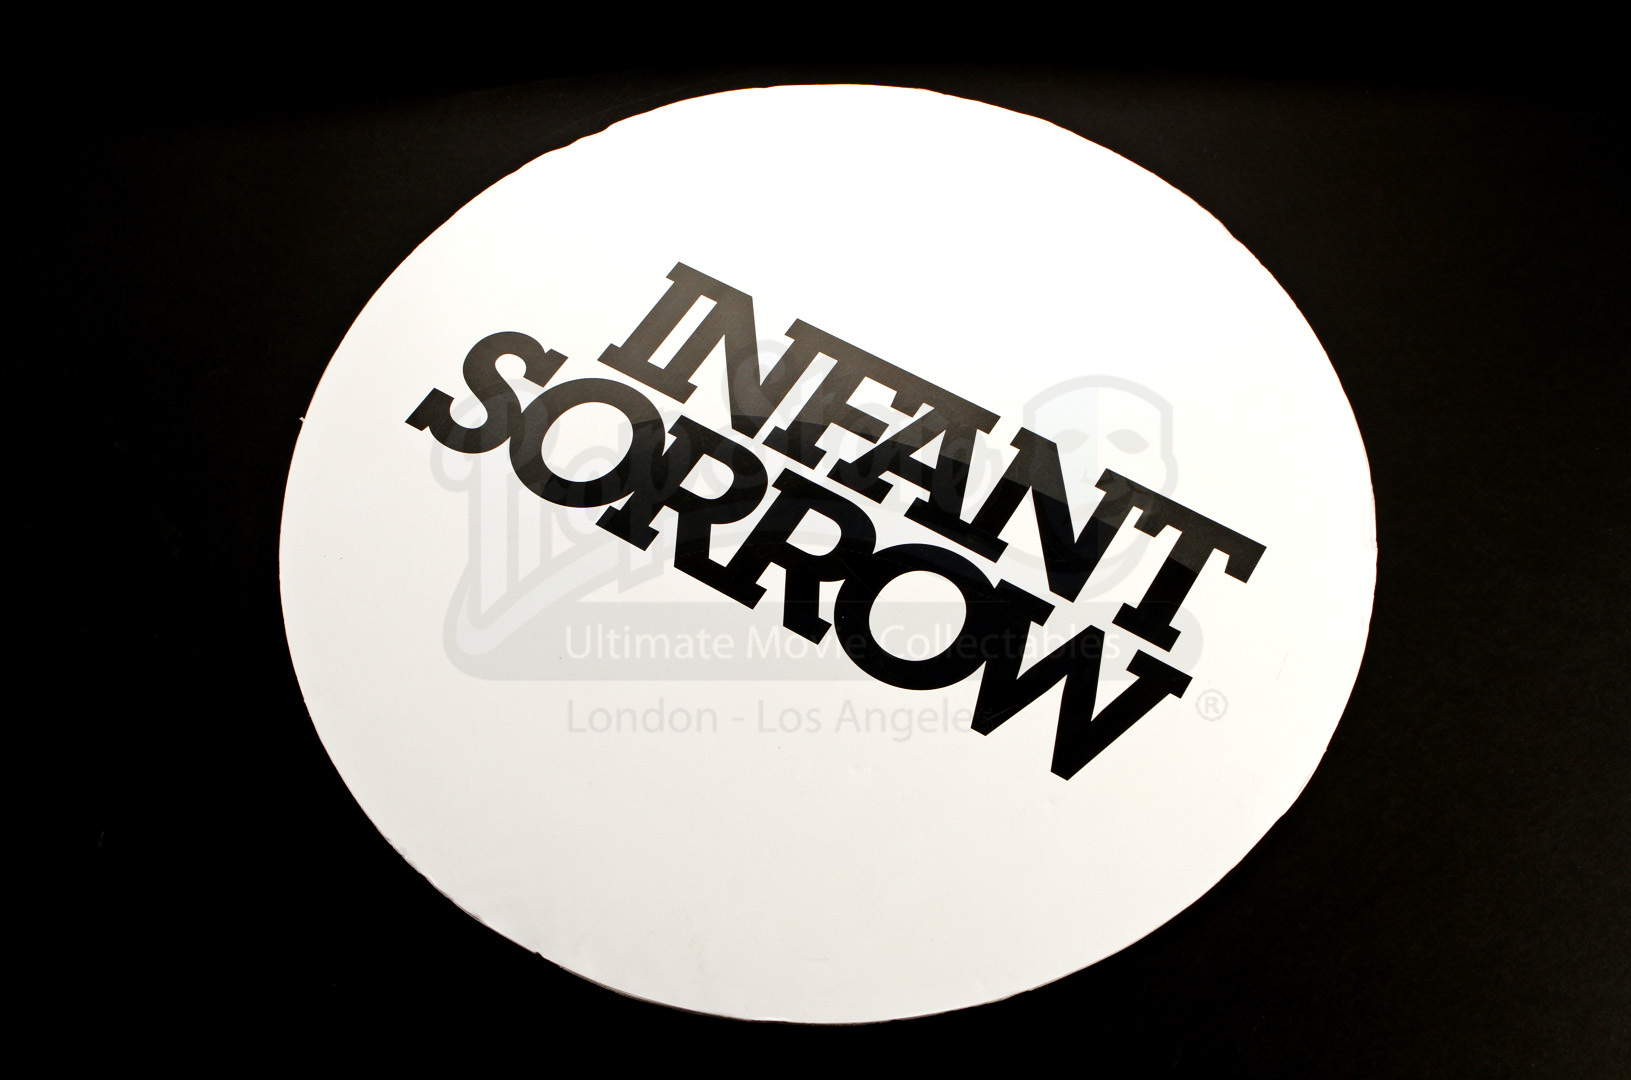 infant sorrow essay Infant joy is a poem written by the english poet william blake it was first published as part of his collection songs of innocence in 1789 and is the counterpart to infant sorrow, which.